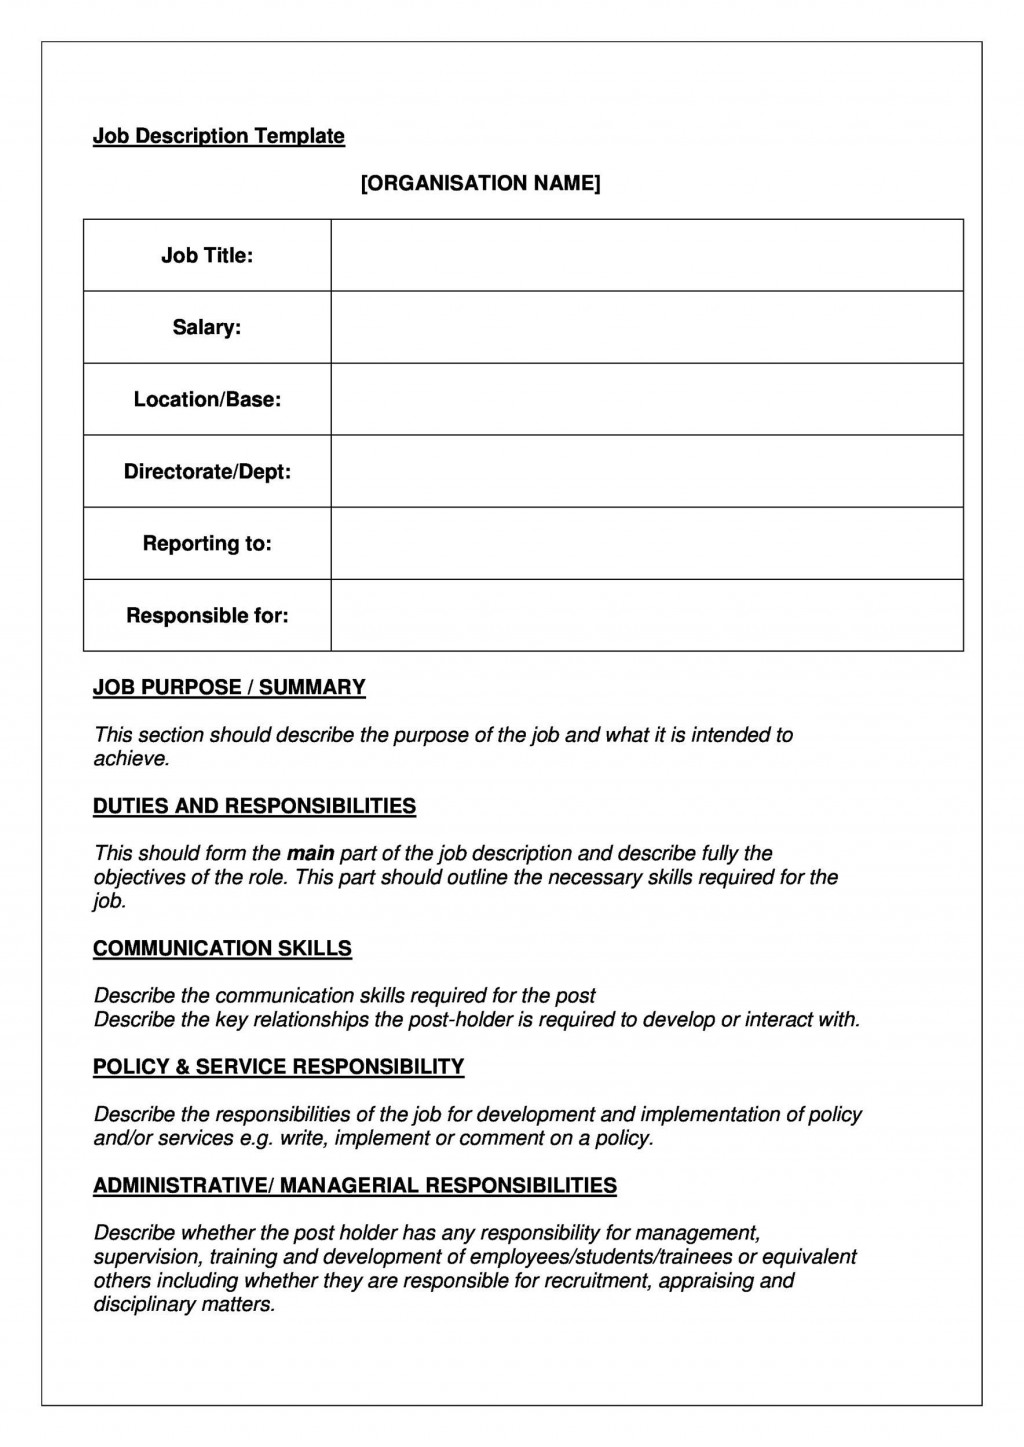 005 Stupendou Blank Job Description Template Picture  Word Free PrintableLarge